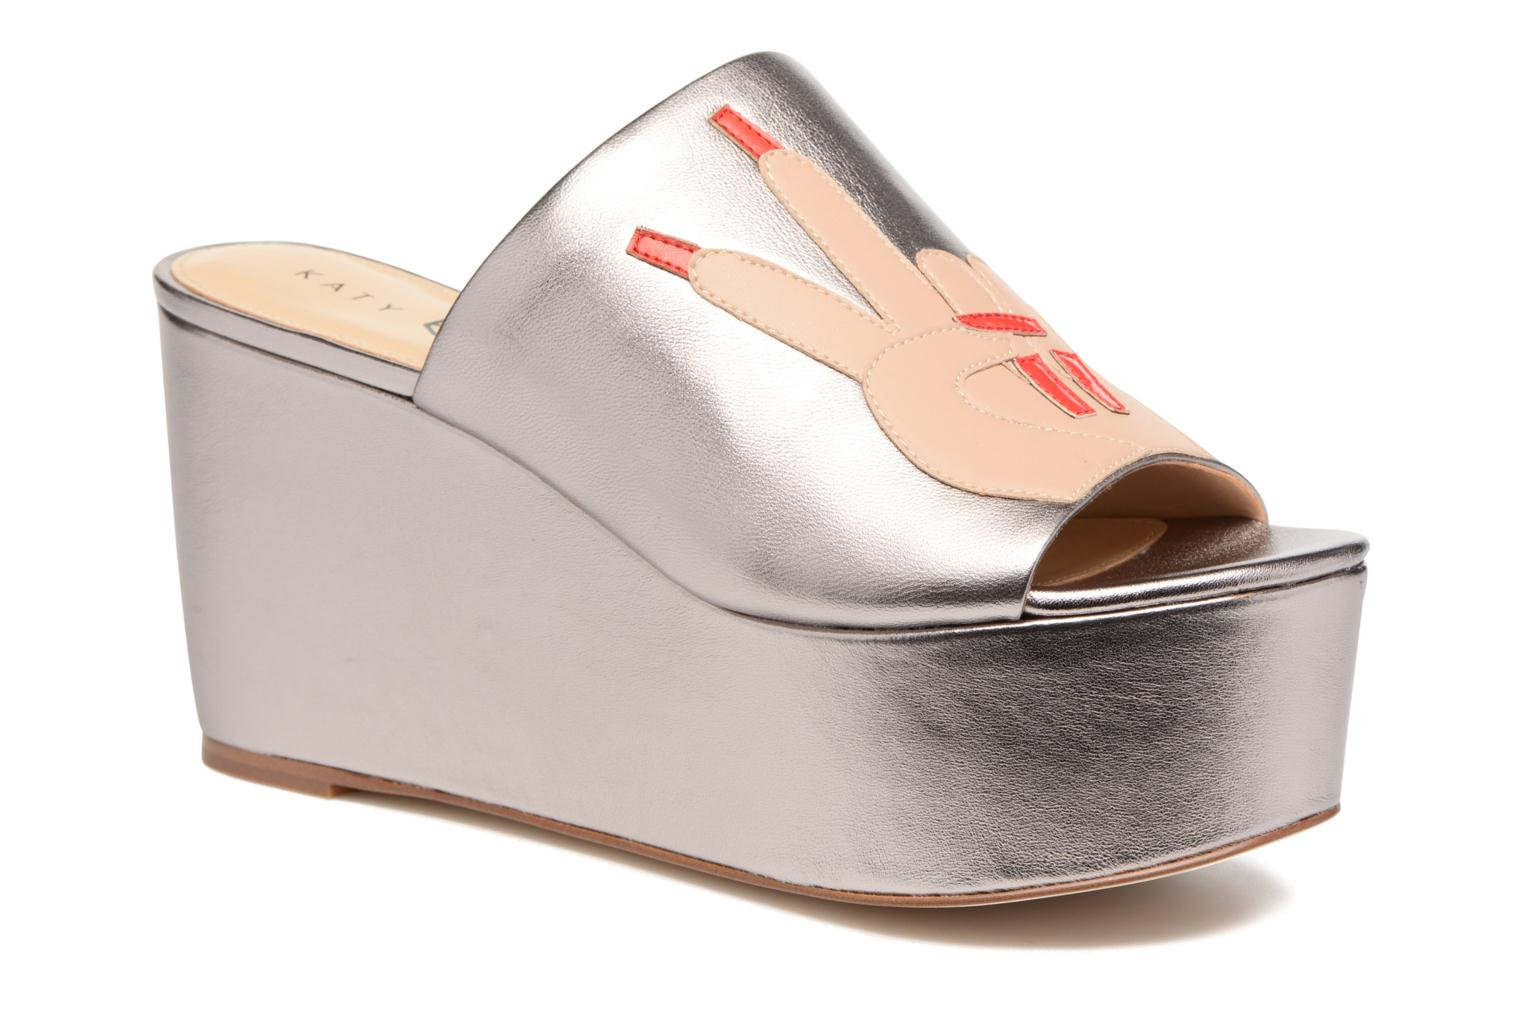 The Katy Perry The Rebecca Katy Perry Silver Rebecca 57wqRXqd